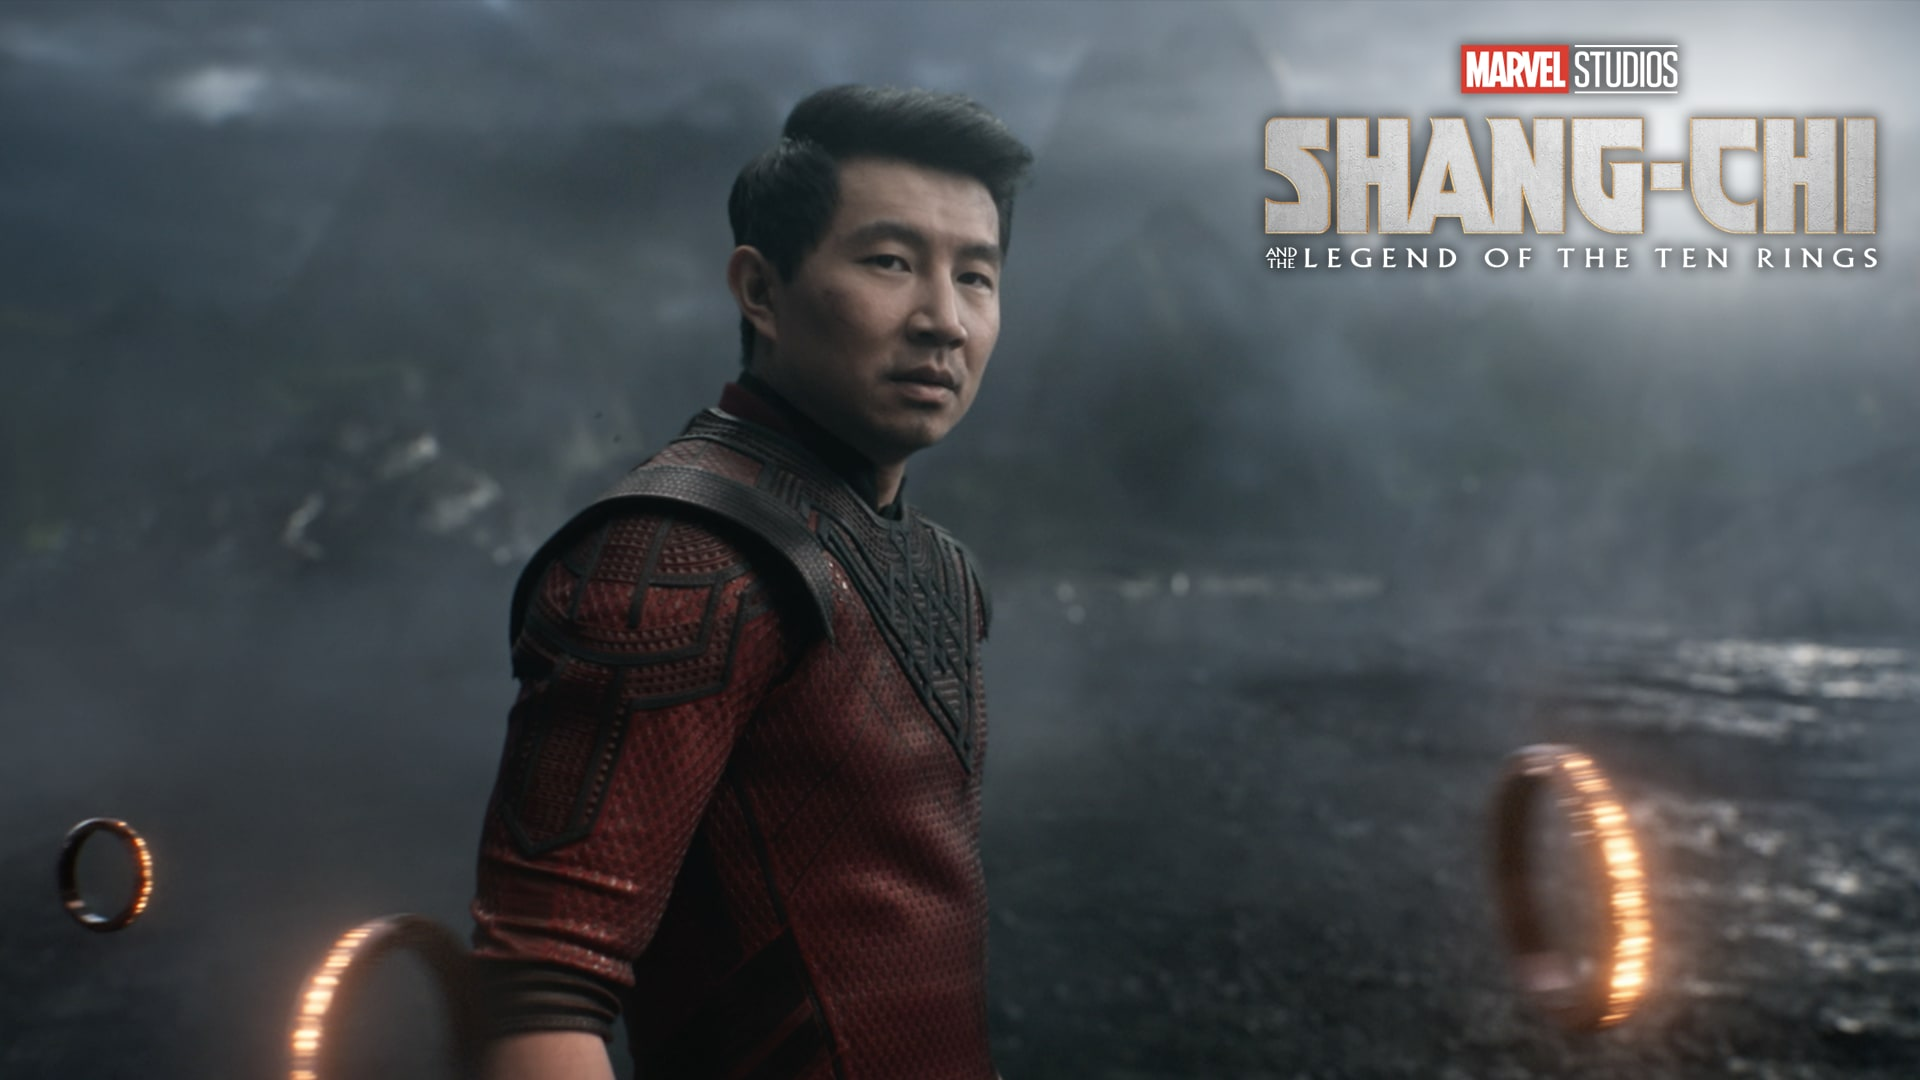 Breath   Marvel Studios' Shang-Chi and the Legend of the Ten Rings